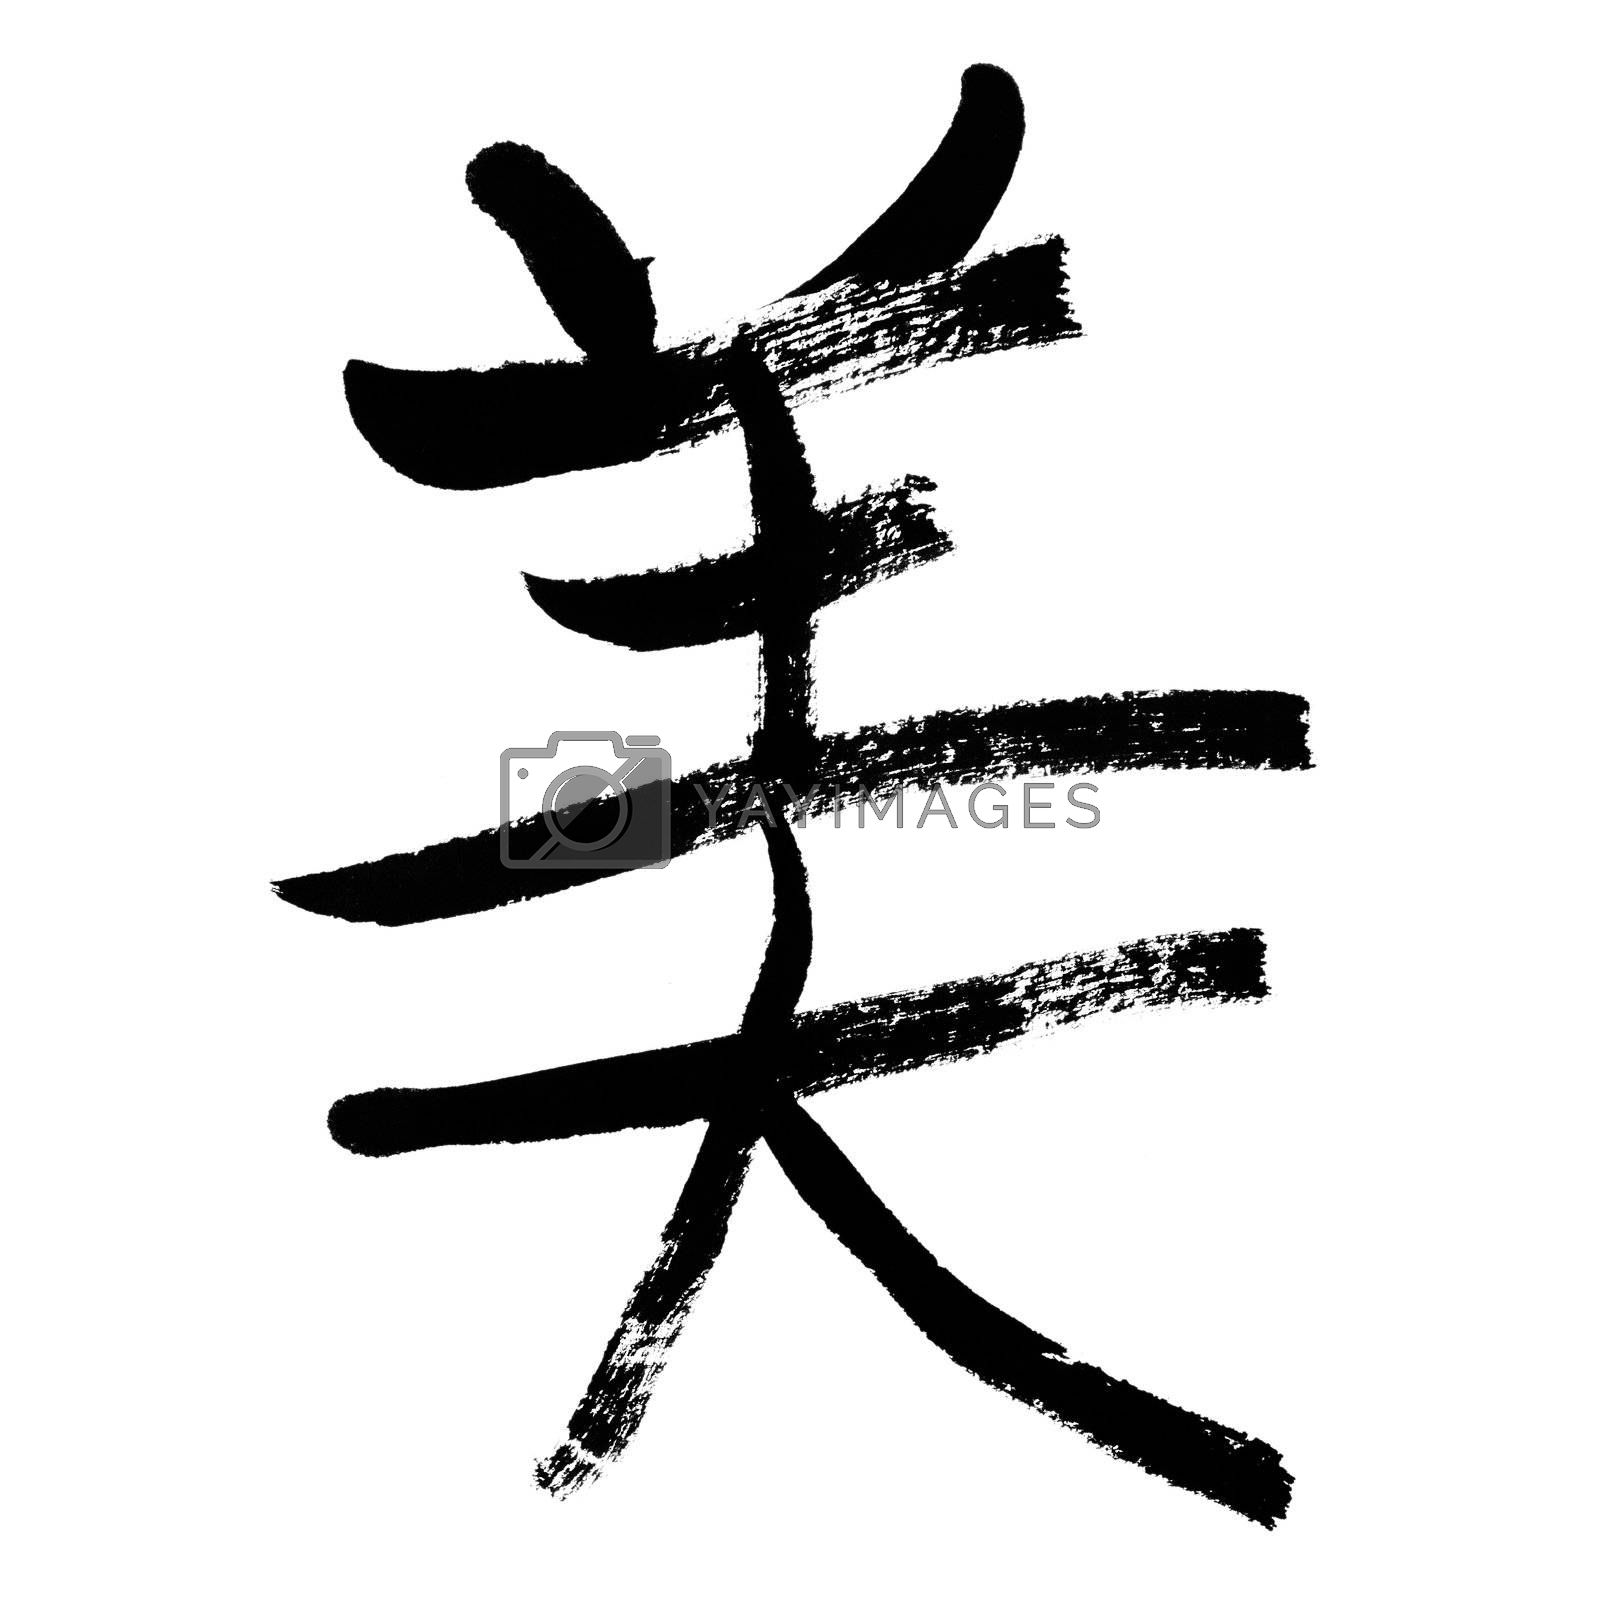 Beauty, traditional chinese calligraphy art isolated on white background.